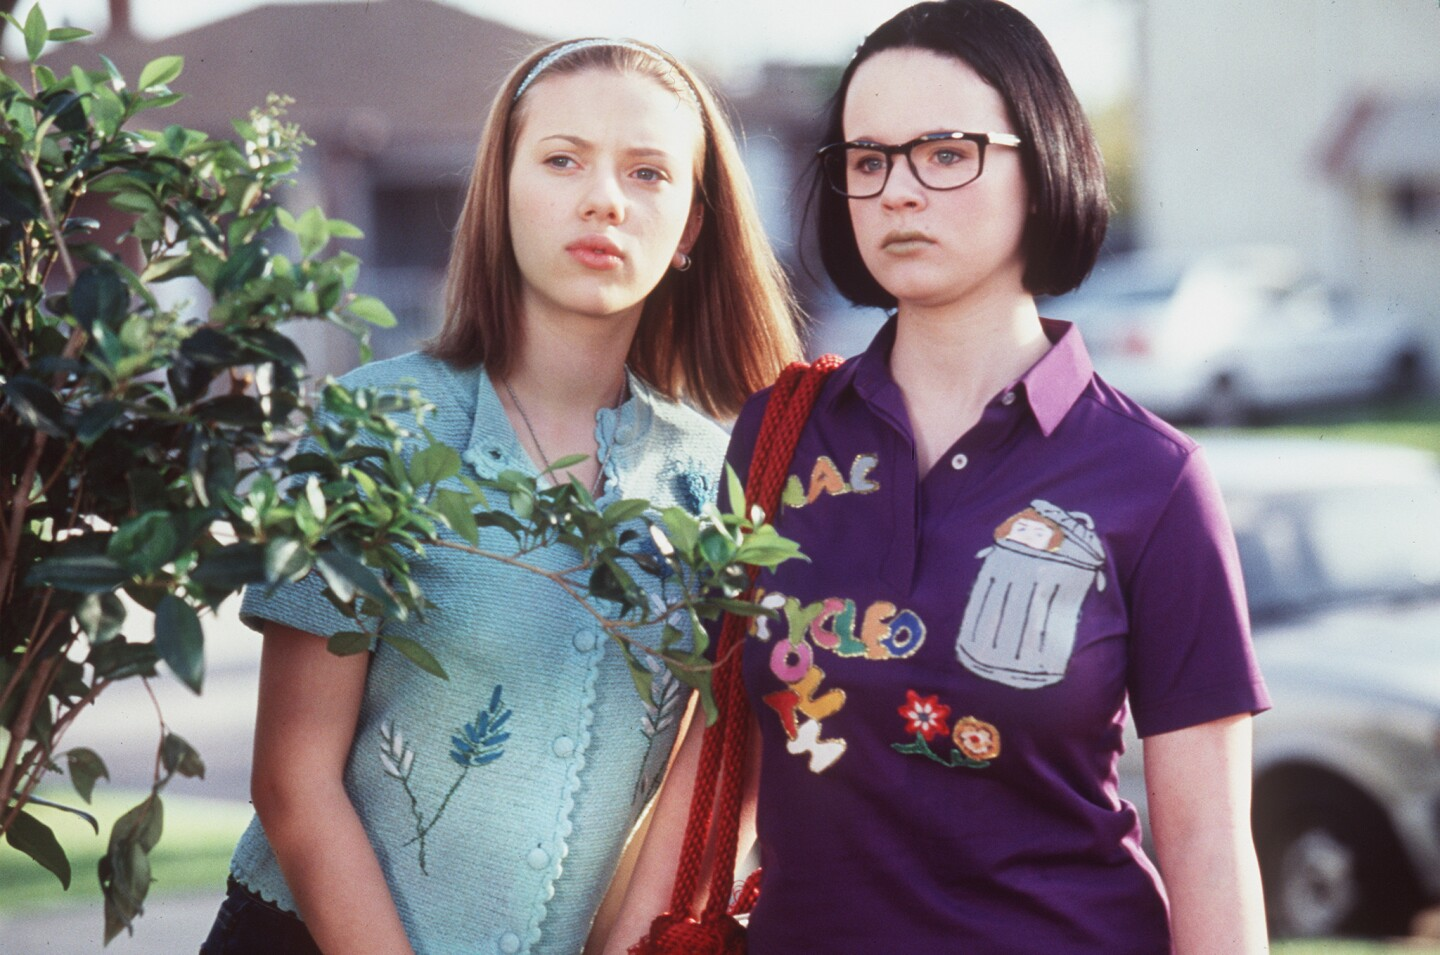 'Ghost World' | 2001